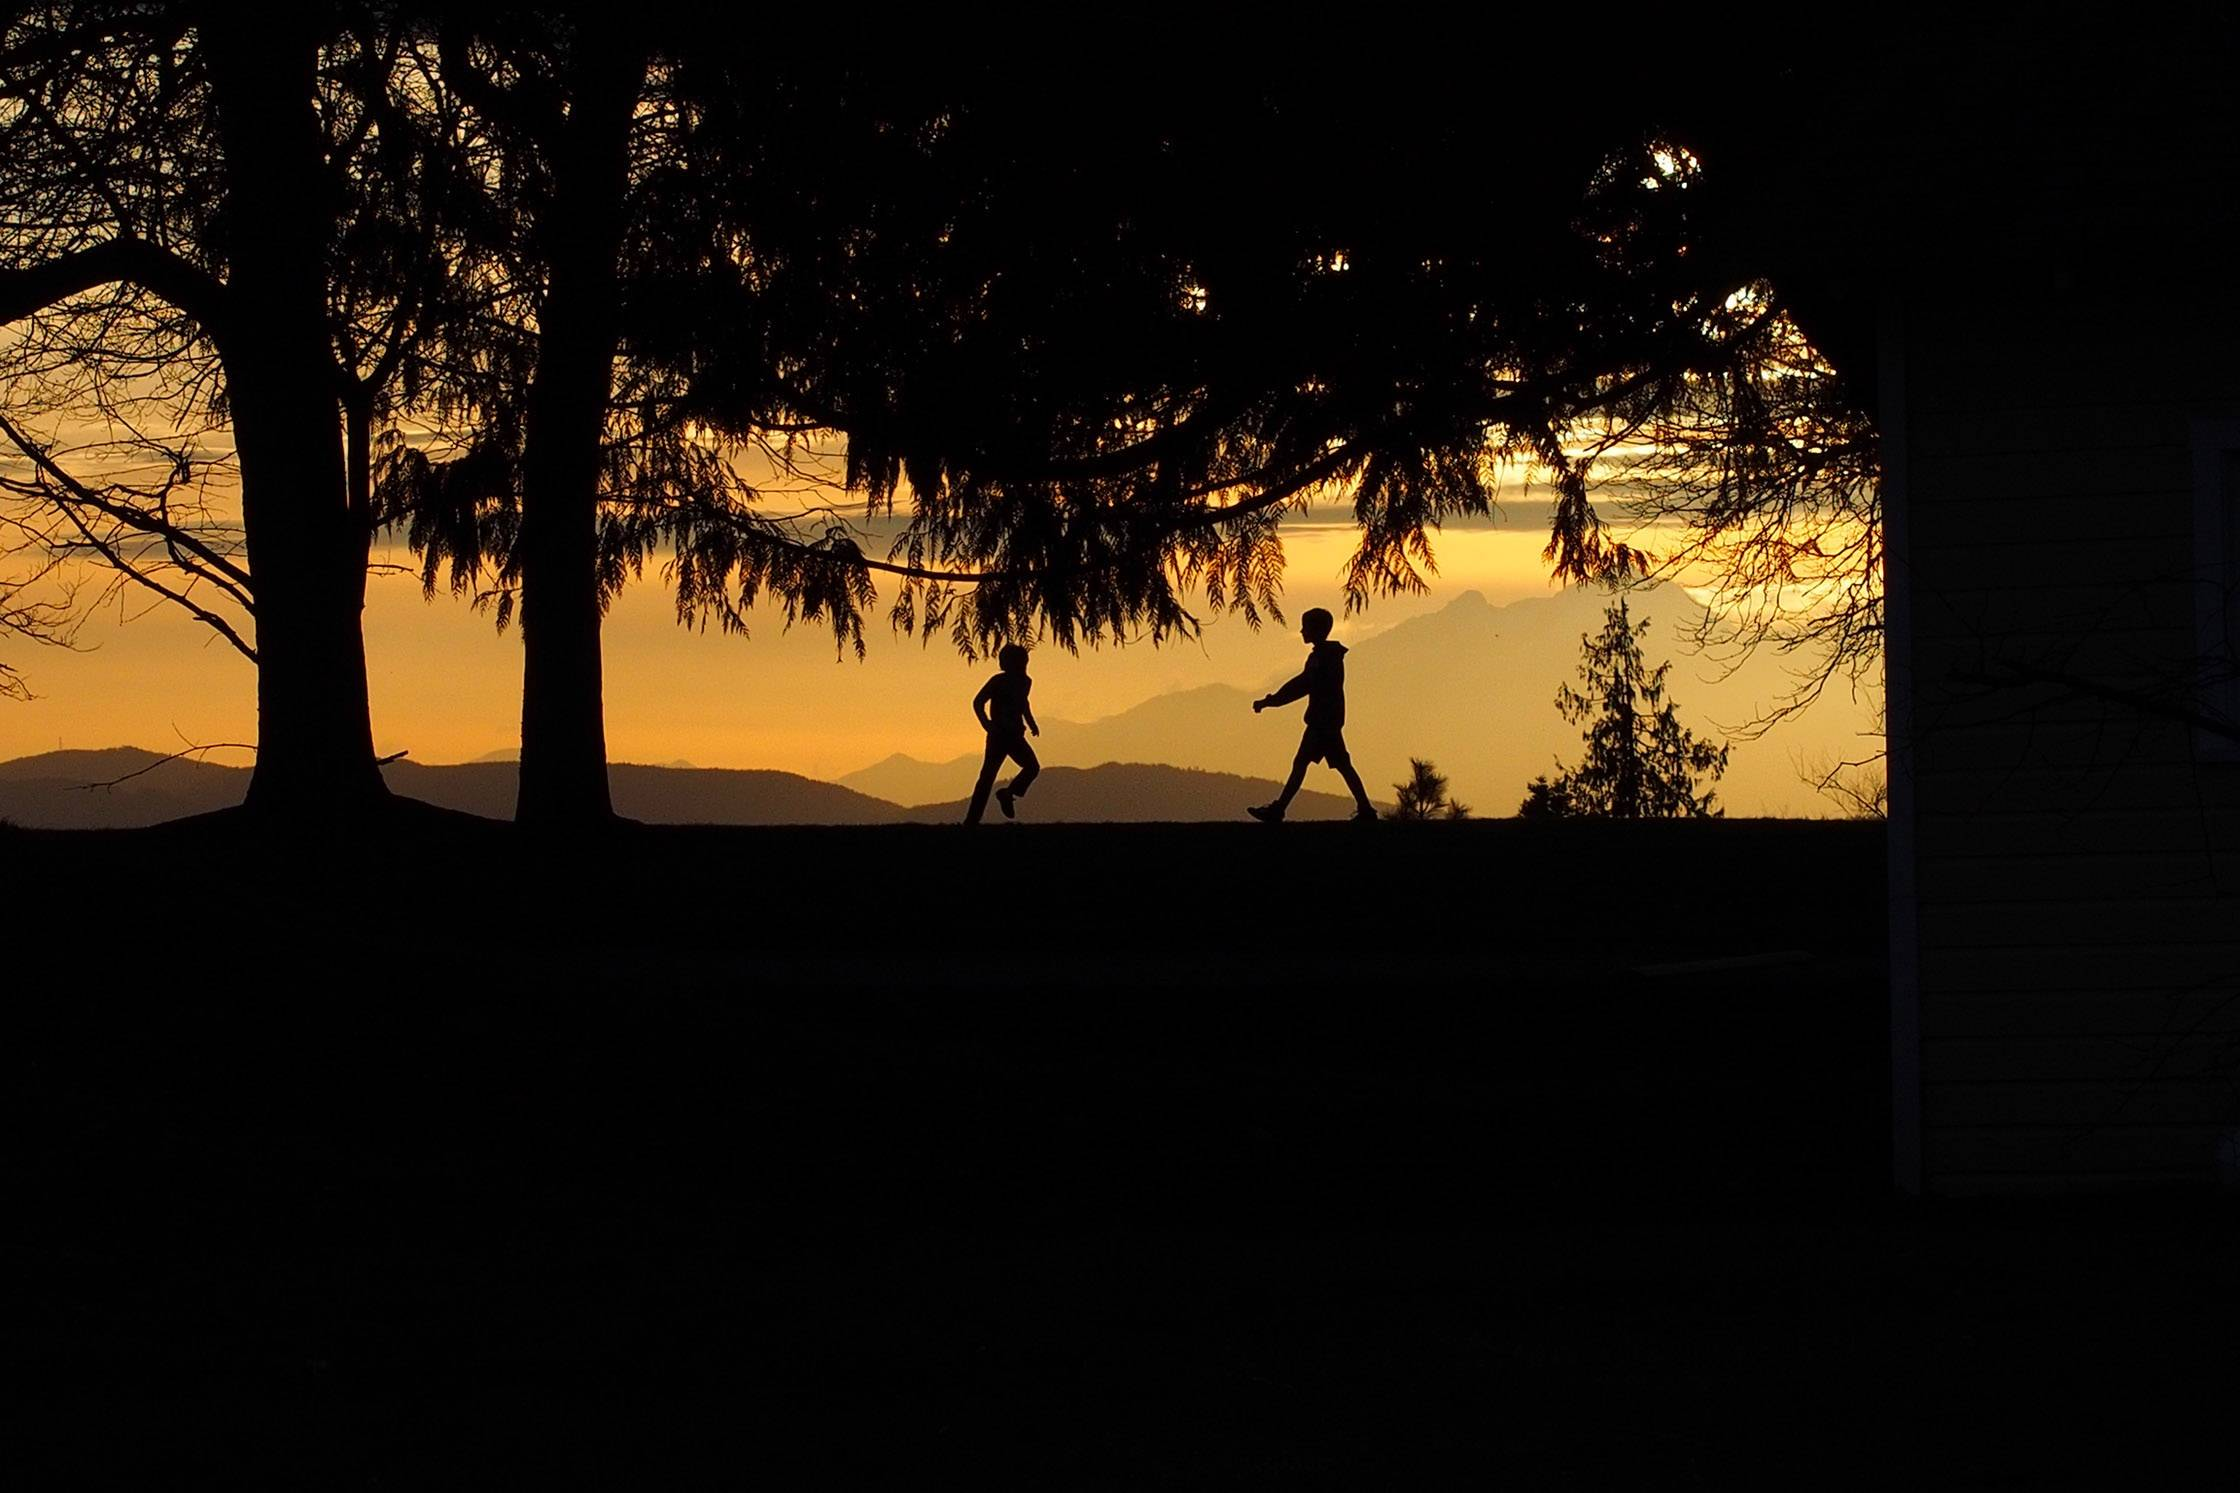 Kids play amongst the trees at Discovery Park in Seattle as the sun sets over the Olympic Mountain range on March 7.